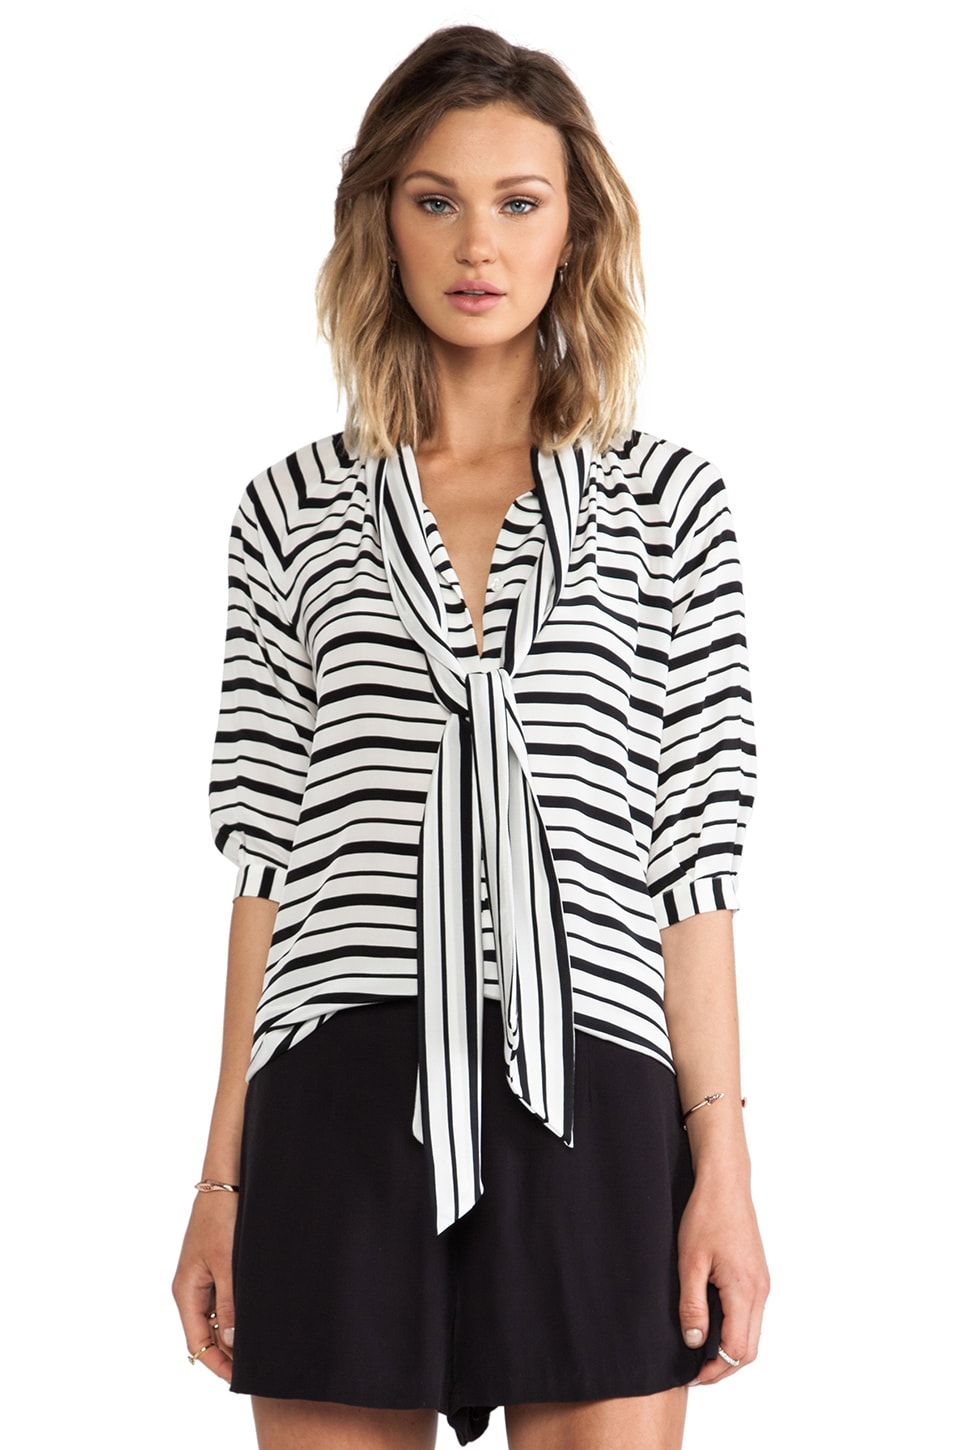 Hunter Bell Tess Blouse in Stripe